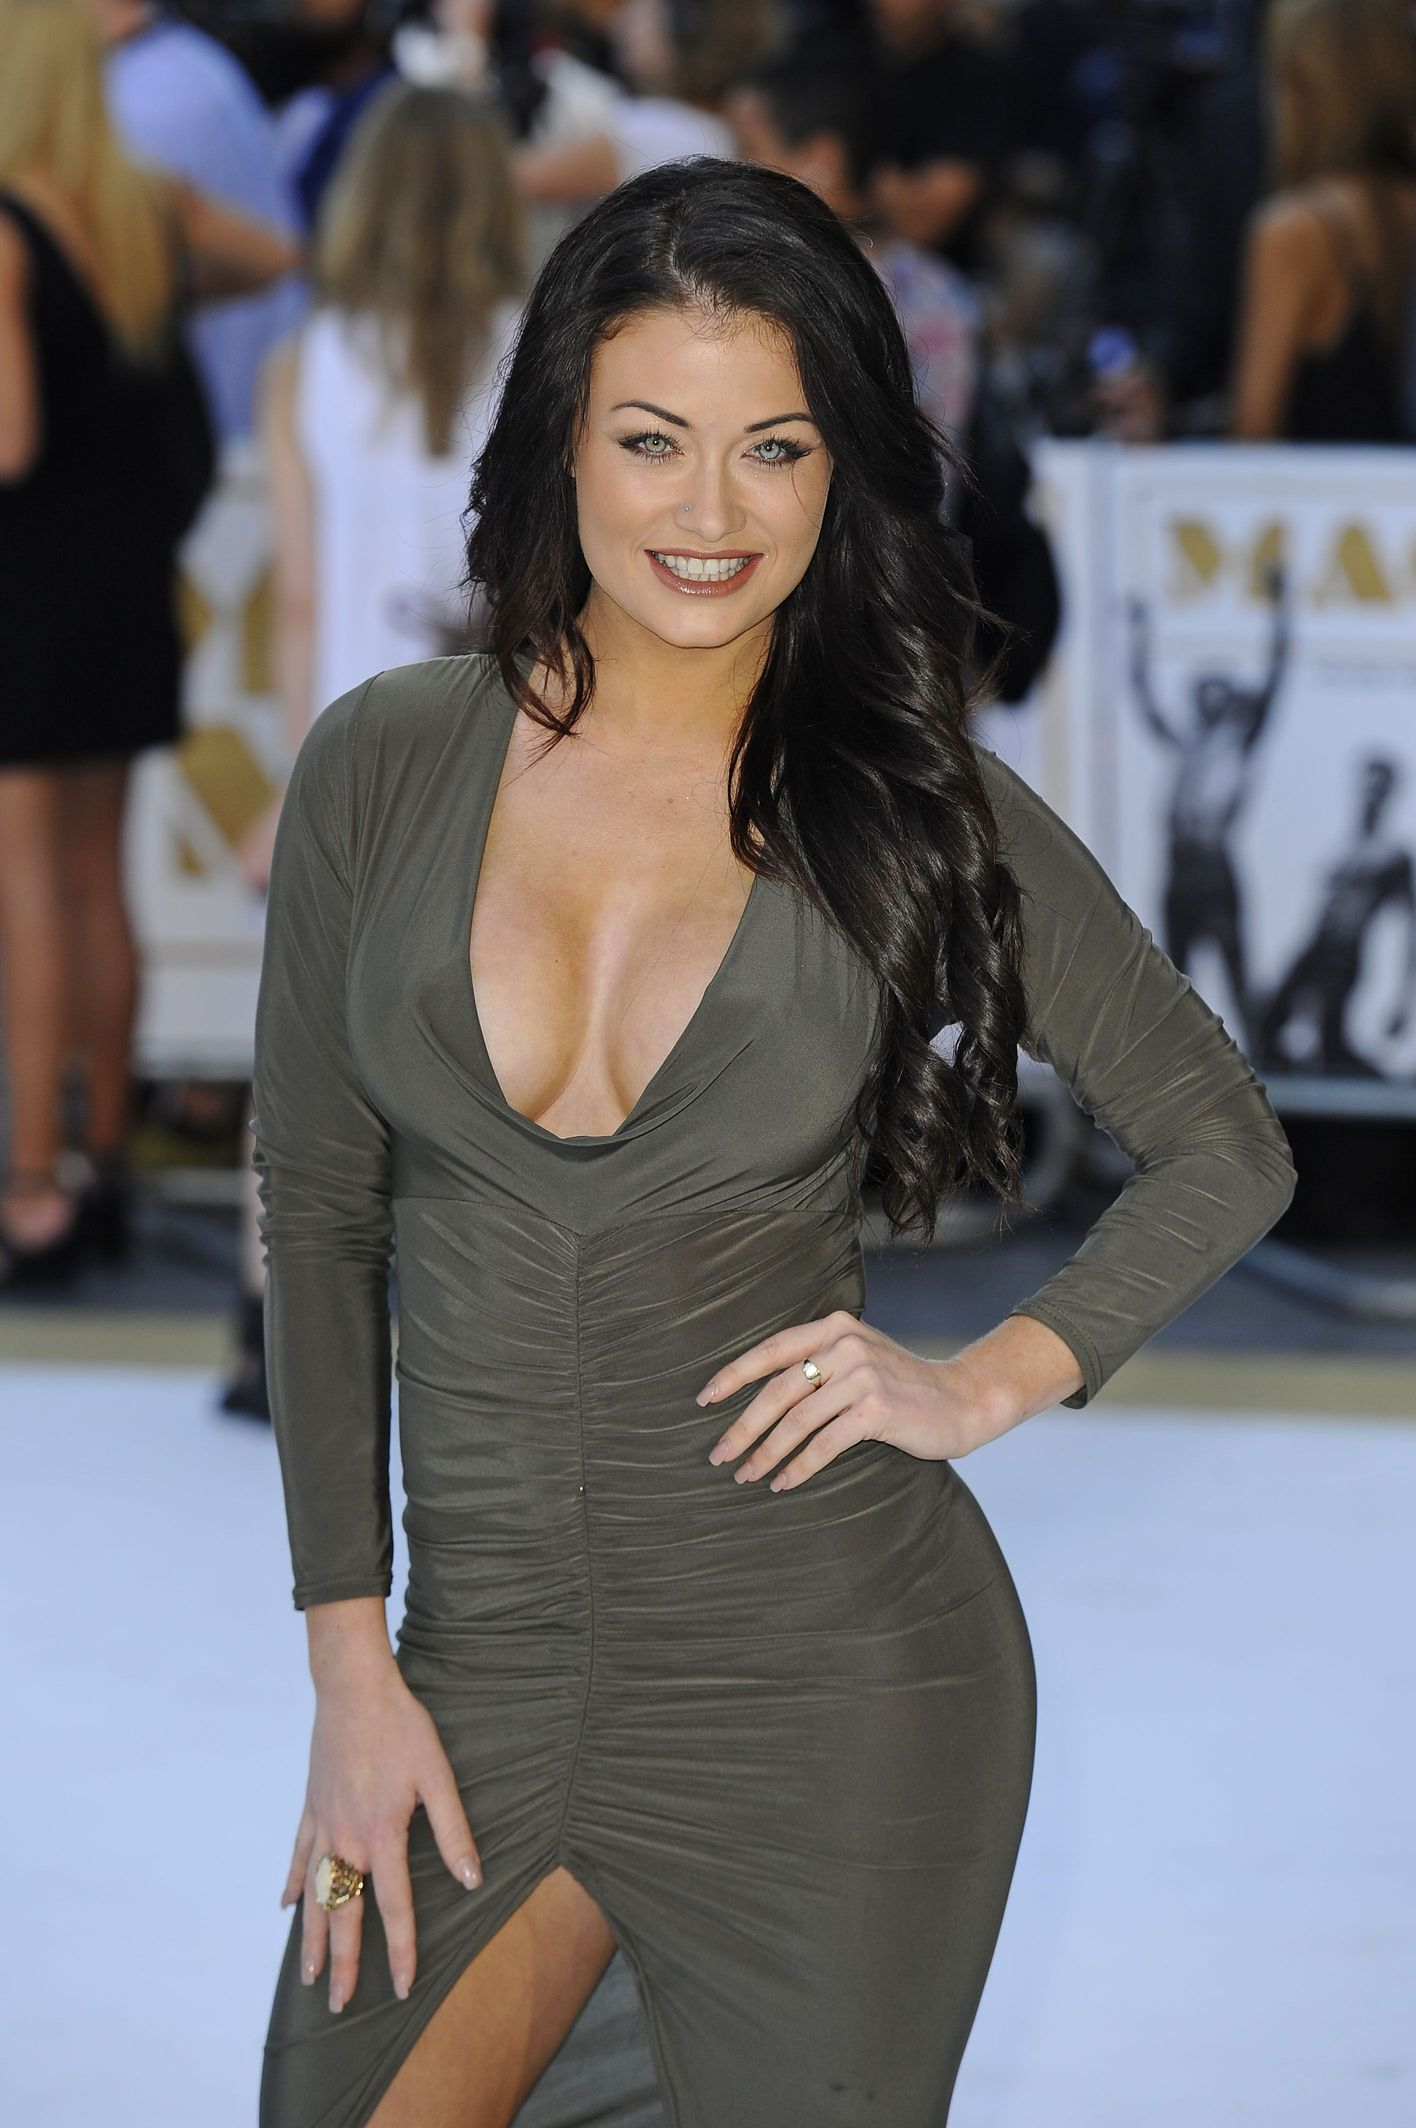 jess impiazzi cleavage 10 photos thefappening